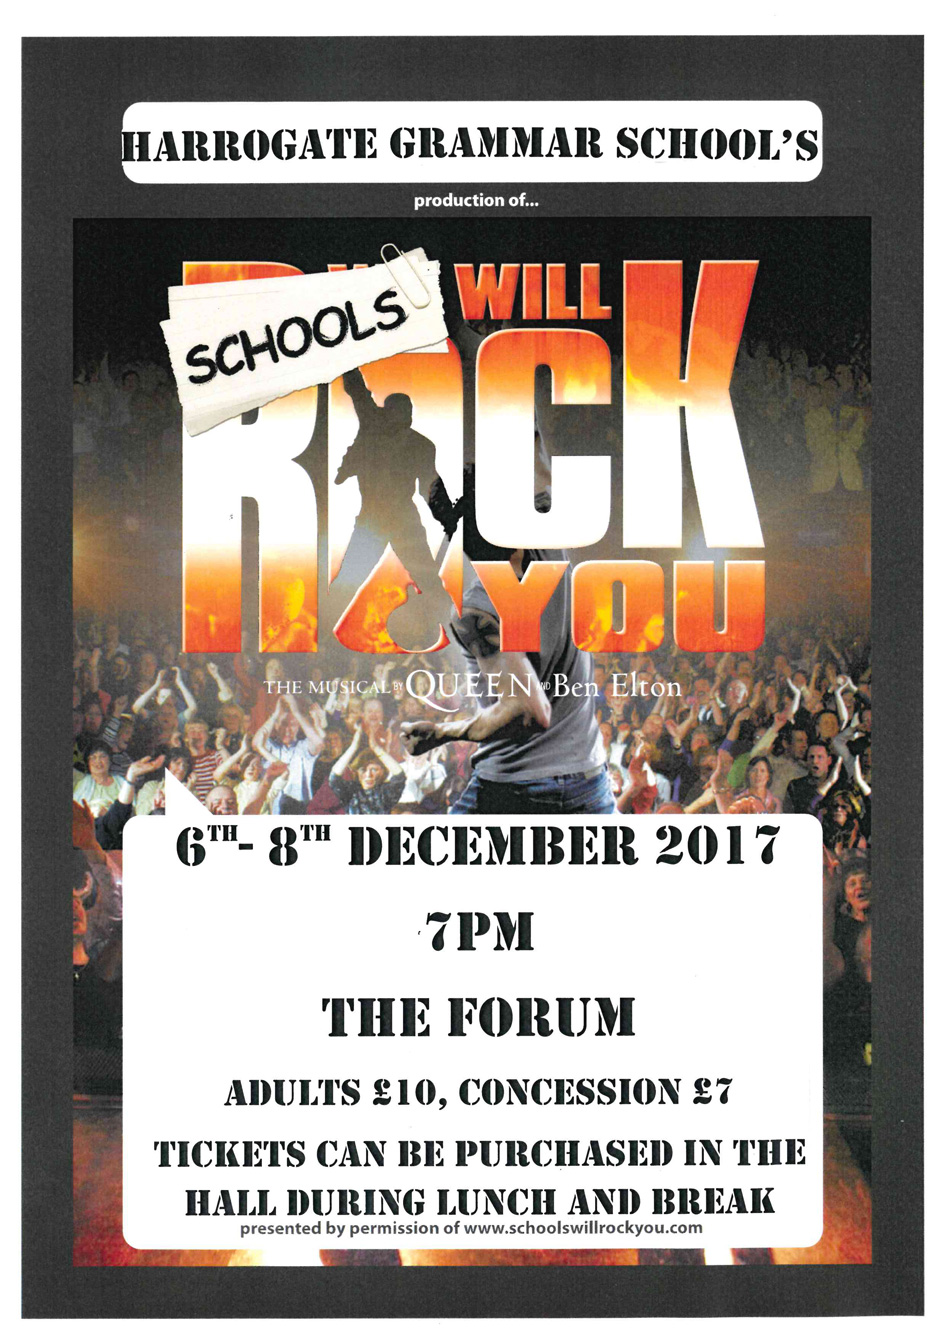 We Will Rock You - Harrogate Grammar School| Harrogate